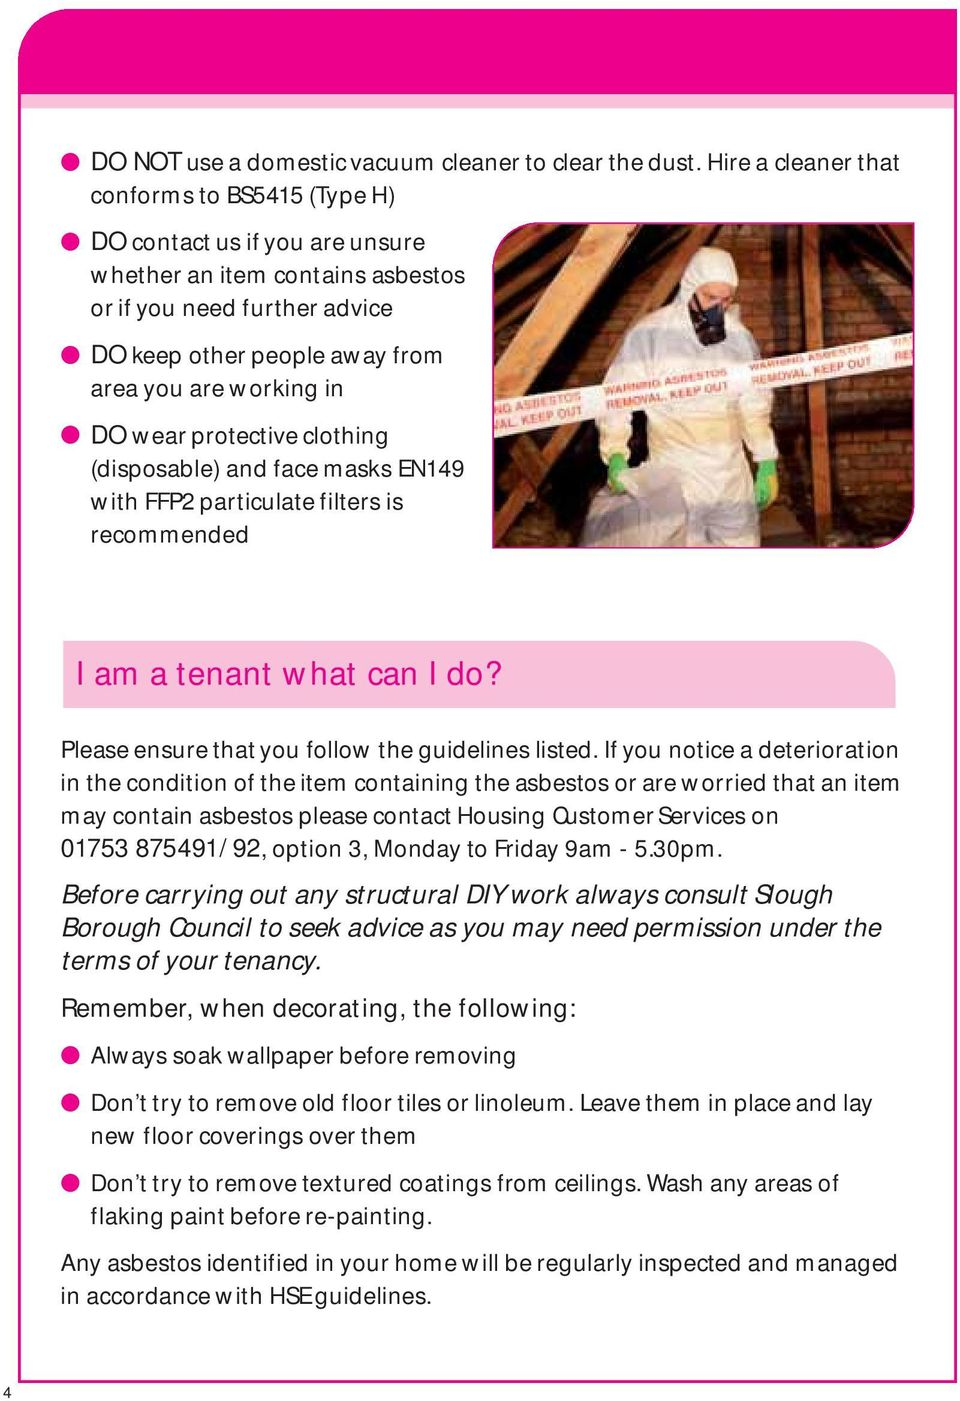 in l DO wear protective clothing (disposable) and face masks EN149 with FFP2 particulate filters is recommended I am a tenant what can I do? Please ensure that you follow the guidelines listed.